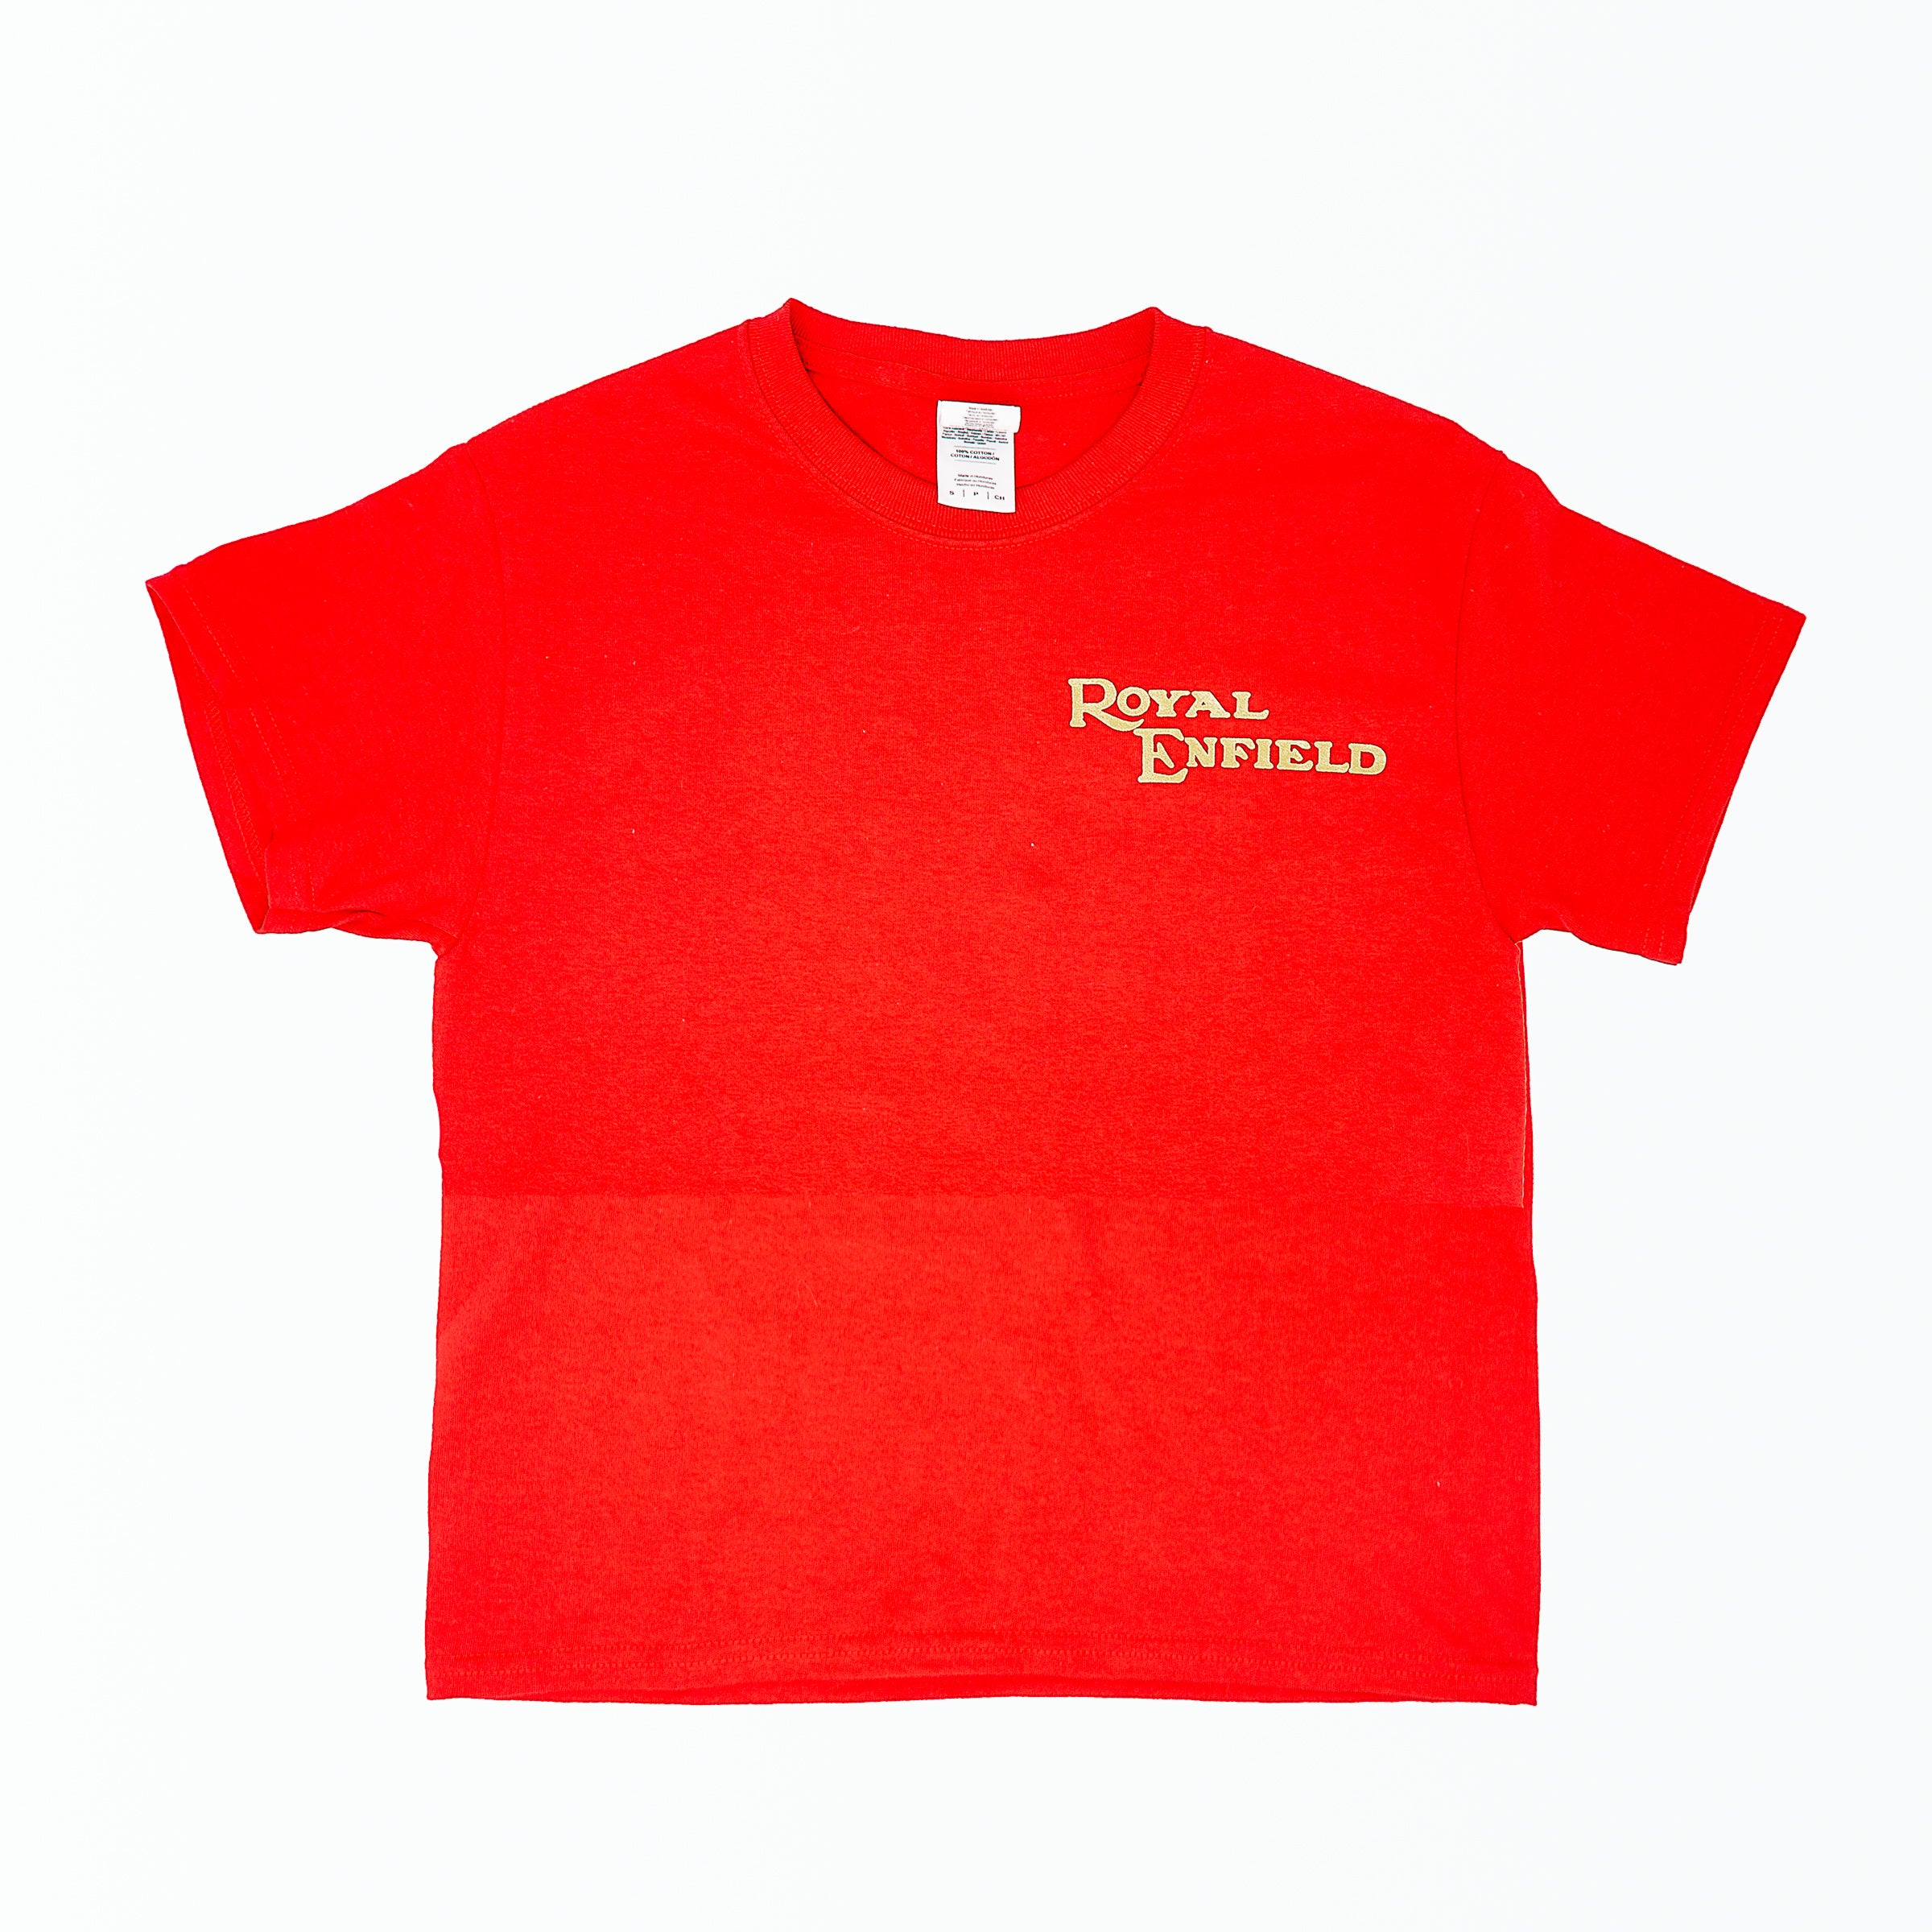 Dreamcycle Motorcycle Museum | Royal Enfield Tshirt on white background.